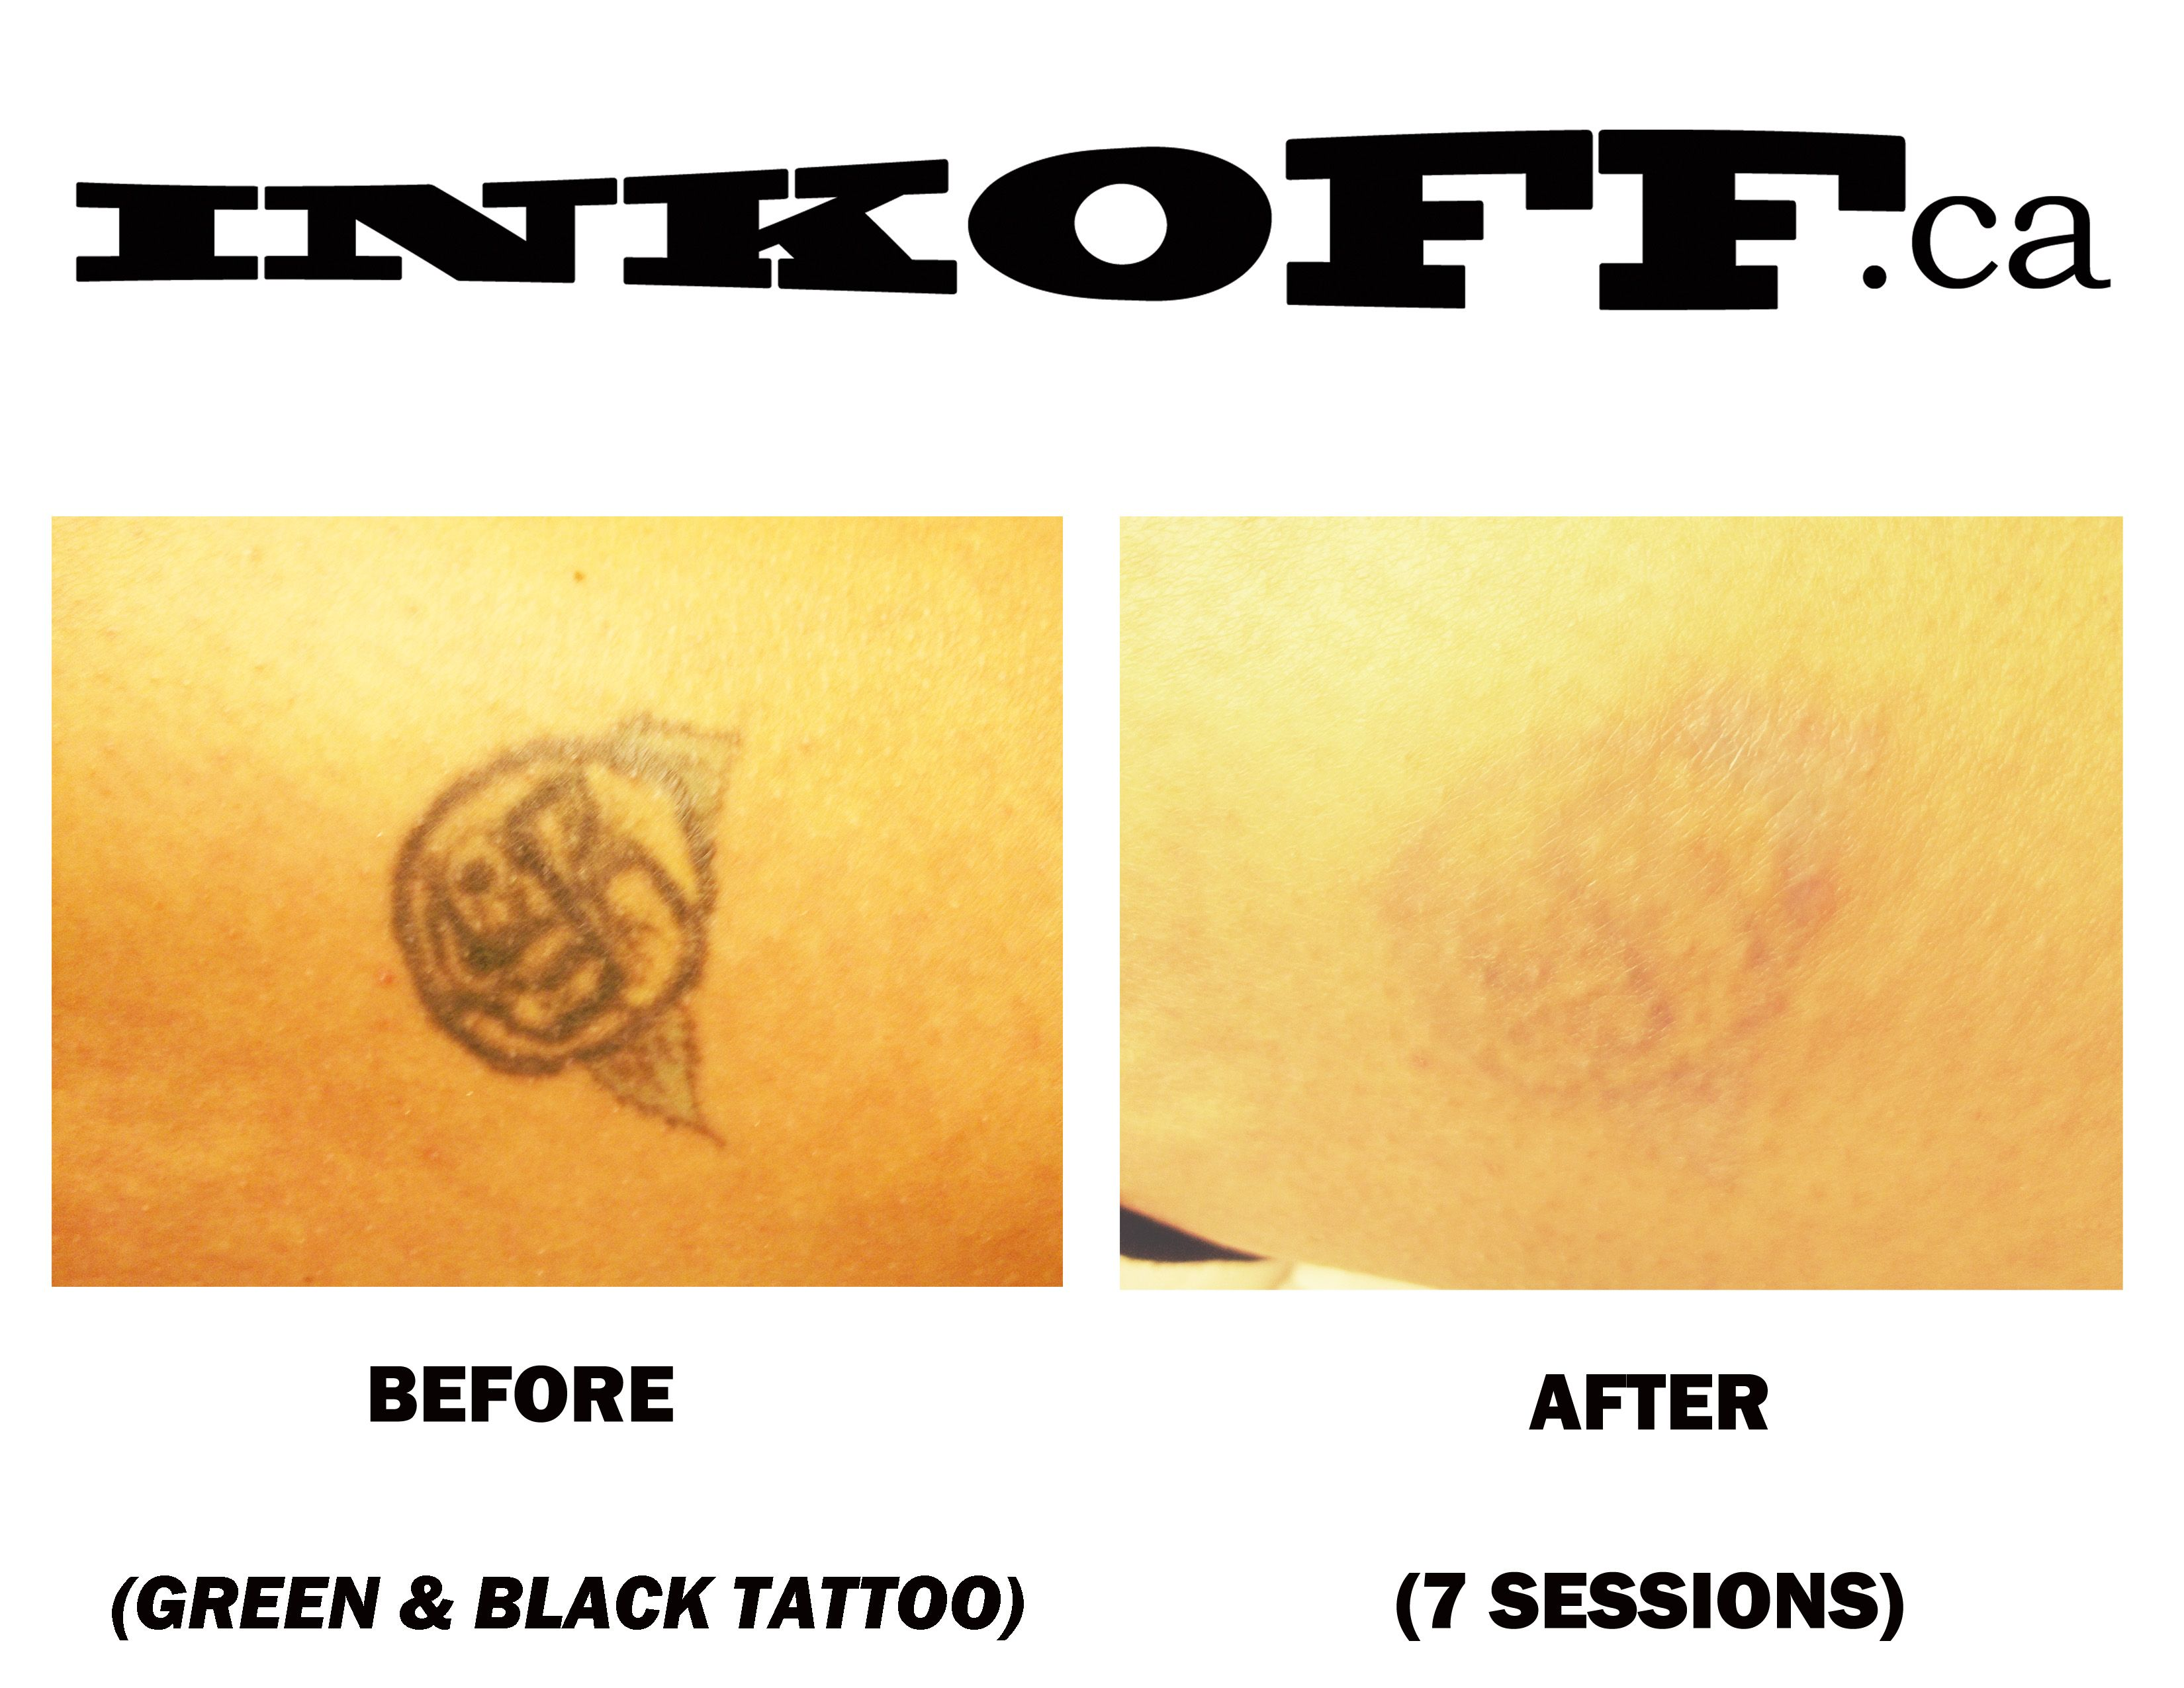 Green and blue tattoo removal beforeafter 7 sessions